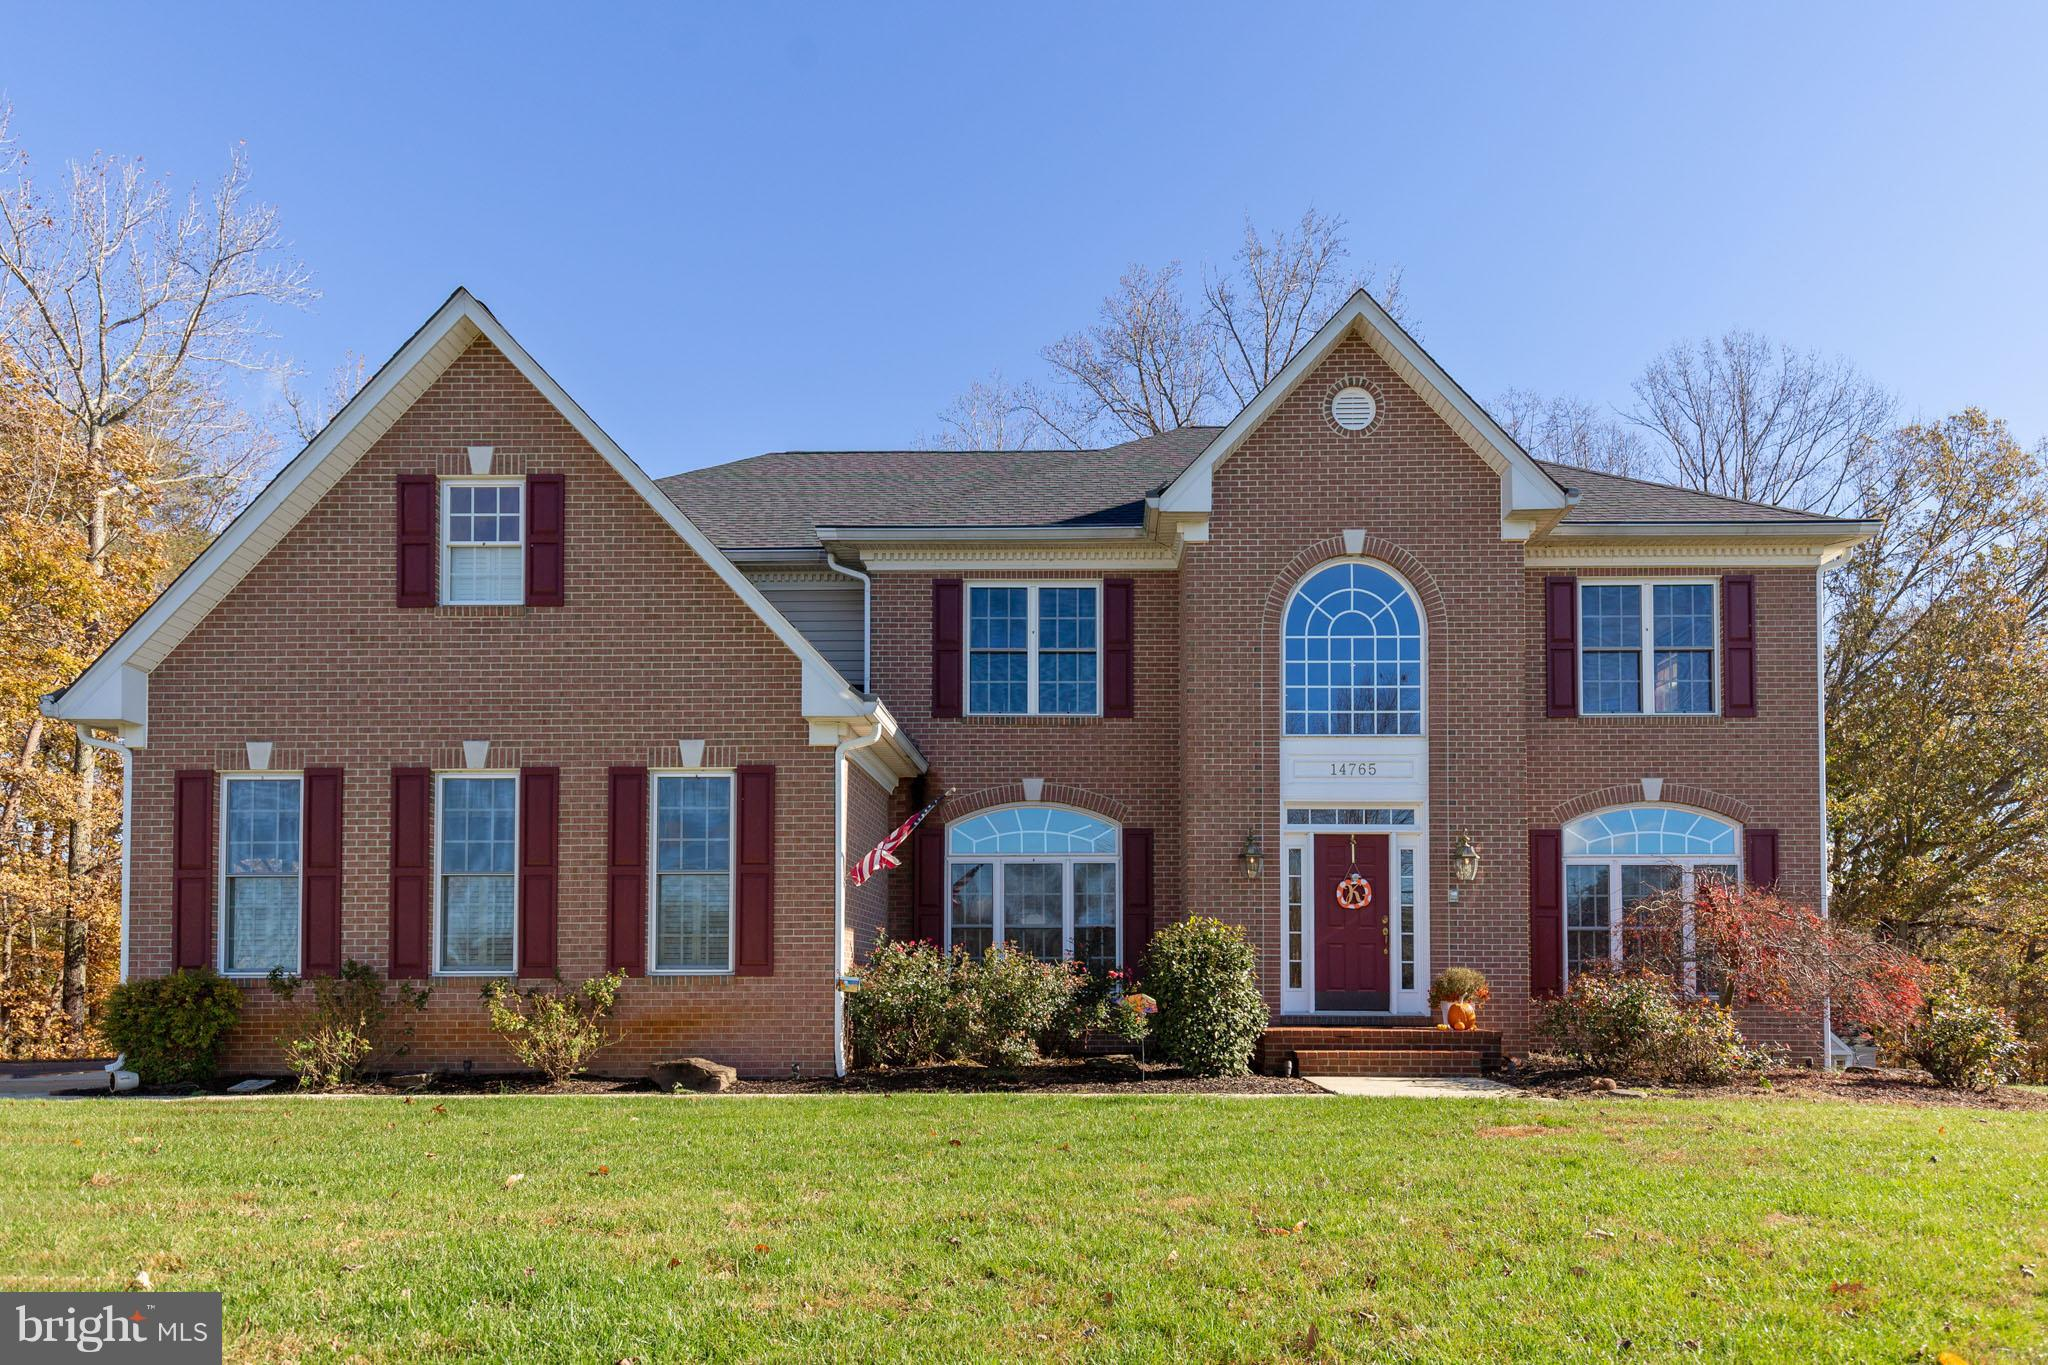 14765 ROYAL COACHMAN PLACE, HUGHESVILLE, MD 20637